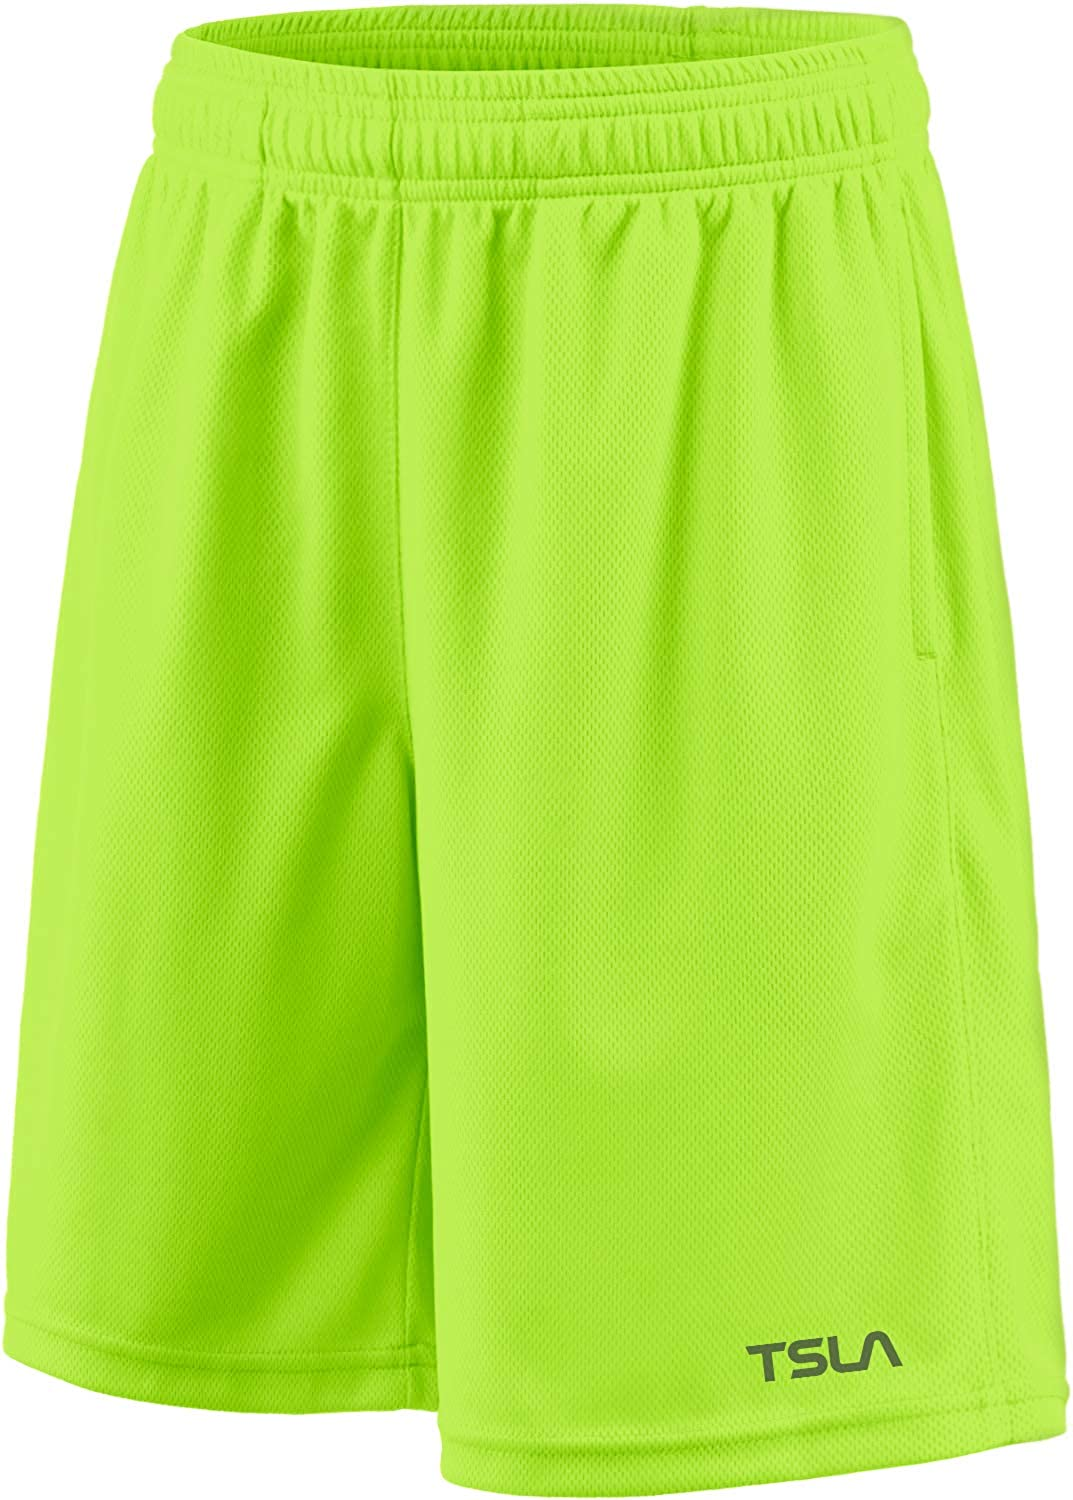 TSLA 1 or 2 Pack Boy's Athletic Shorts, Quick Dry Pull On Basketball Running Shorts, Active Sports Workout Gym Shorts : Clothing